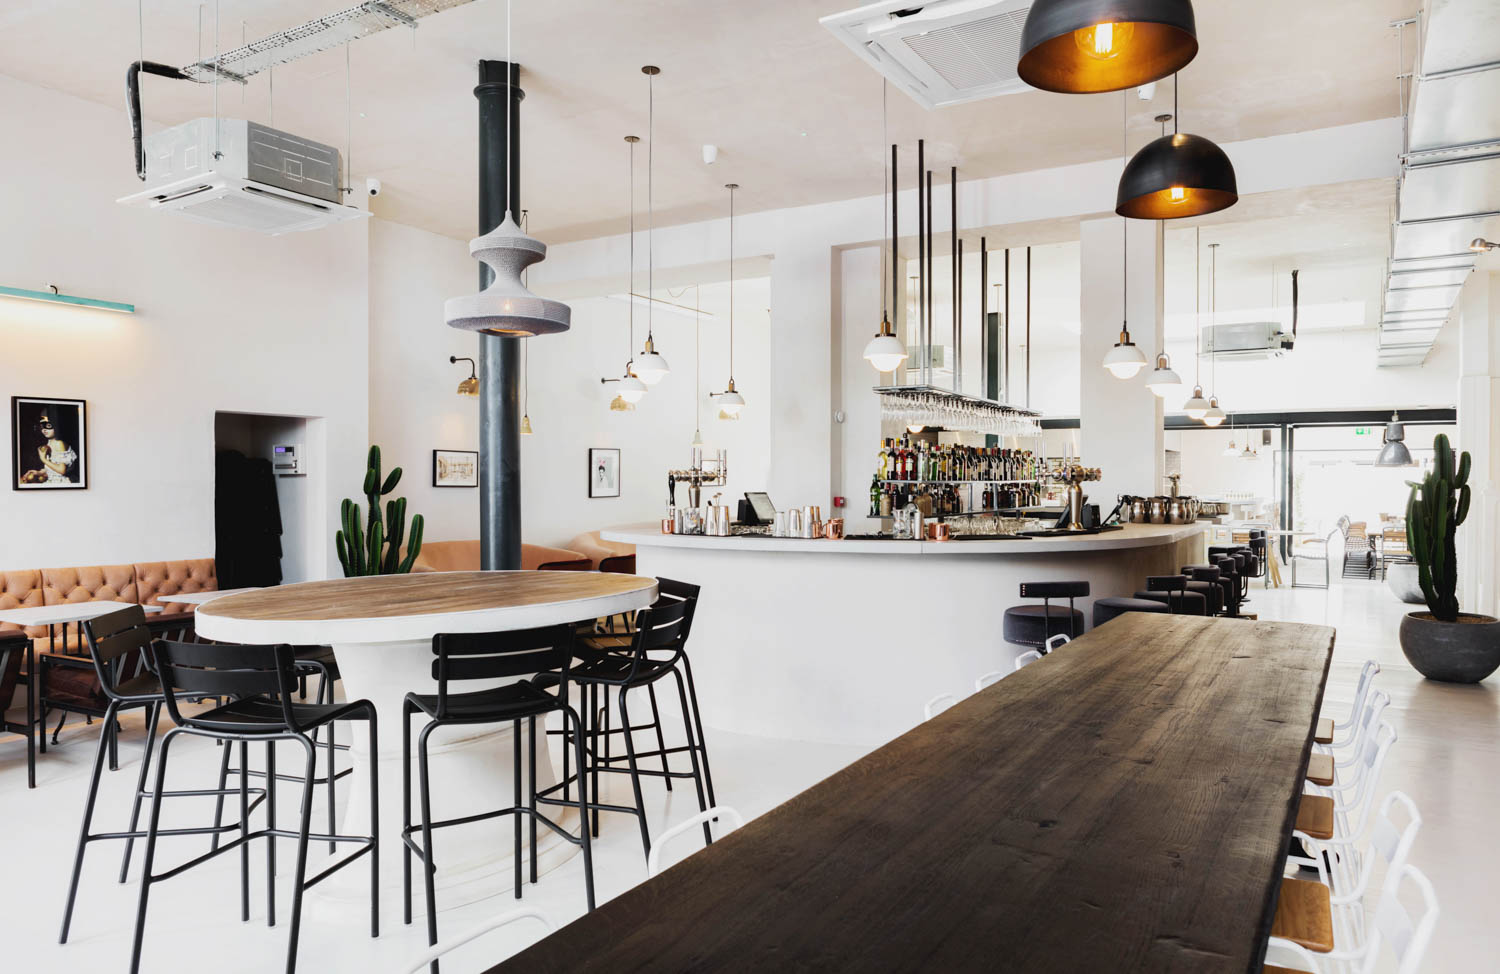 No197 Chiswick Fire Station | Bar & Restaurant in Chiswick